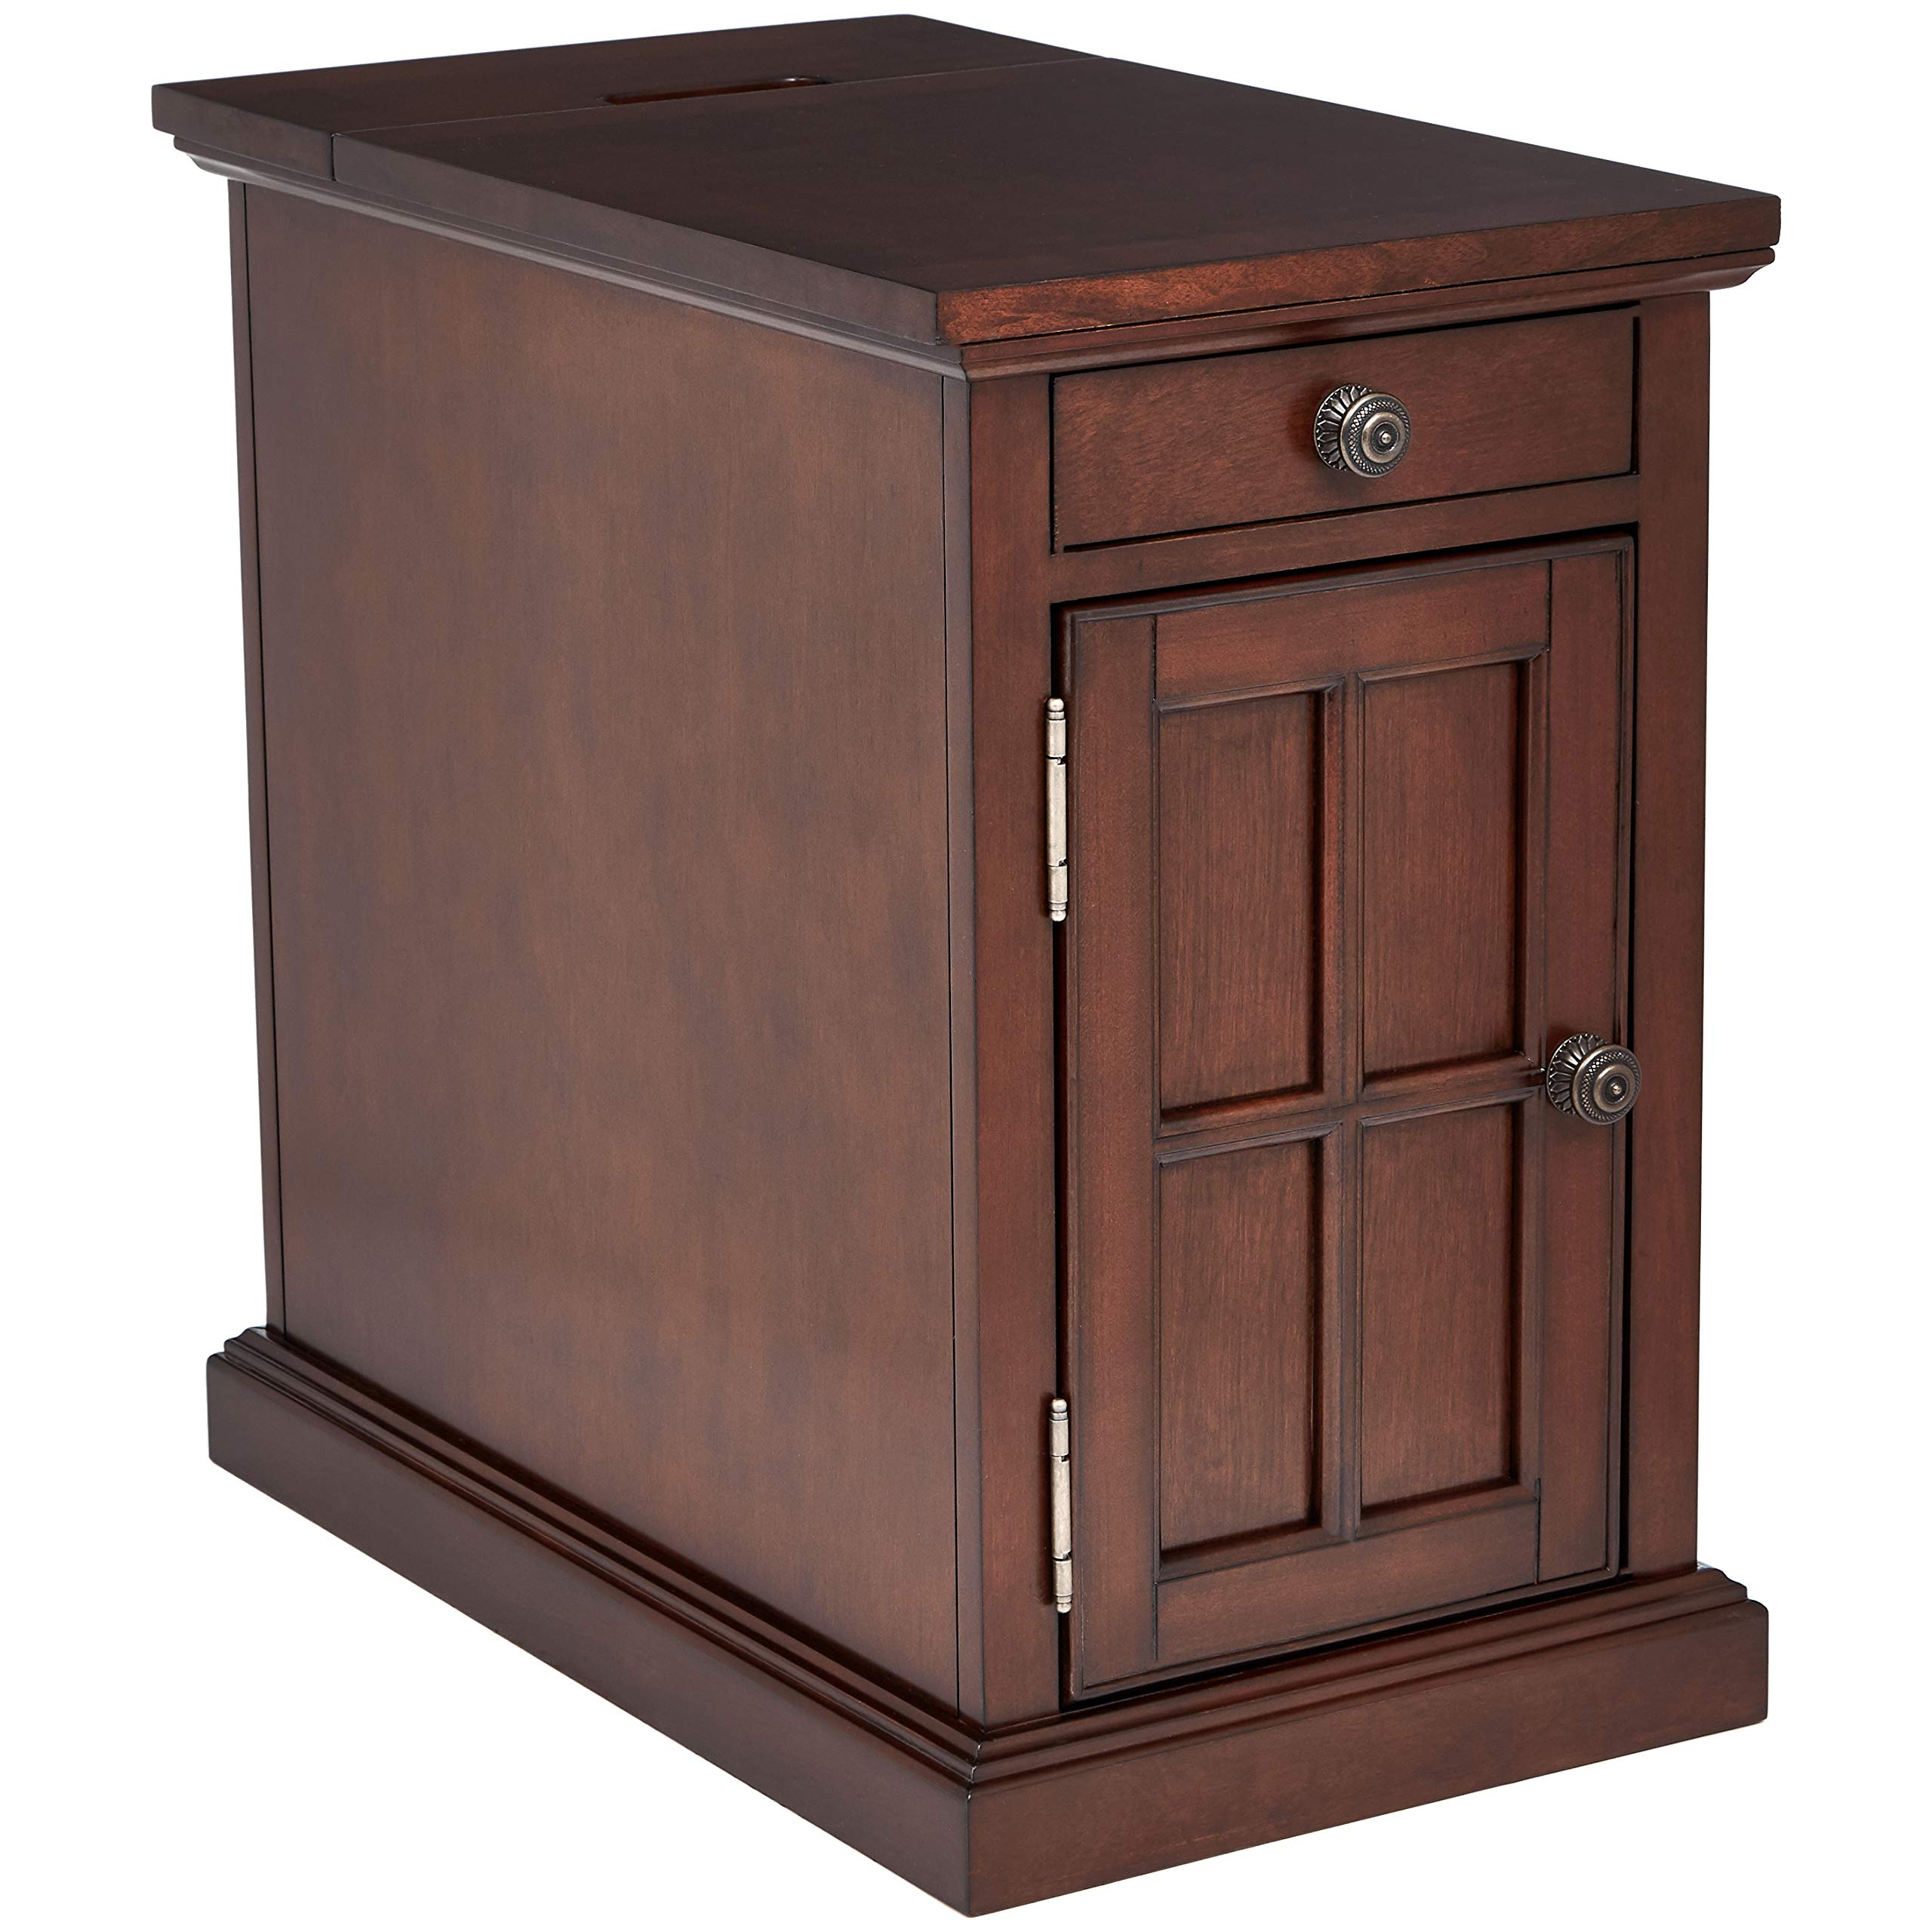 Ball & Cast End Table - Dark Brown by Ball & Cast